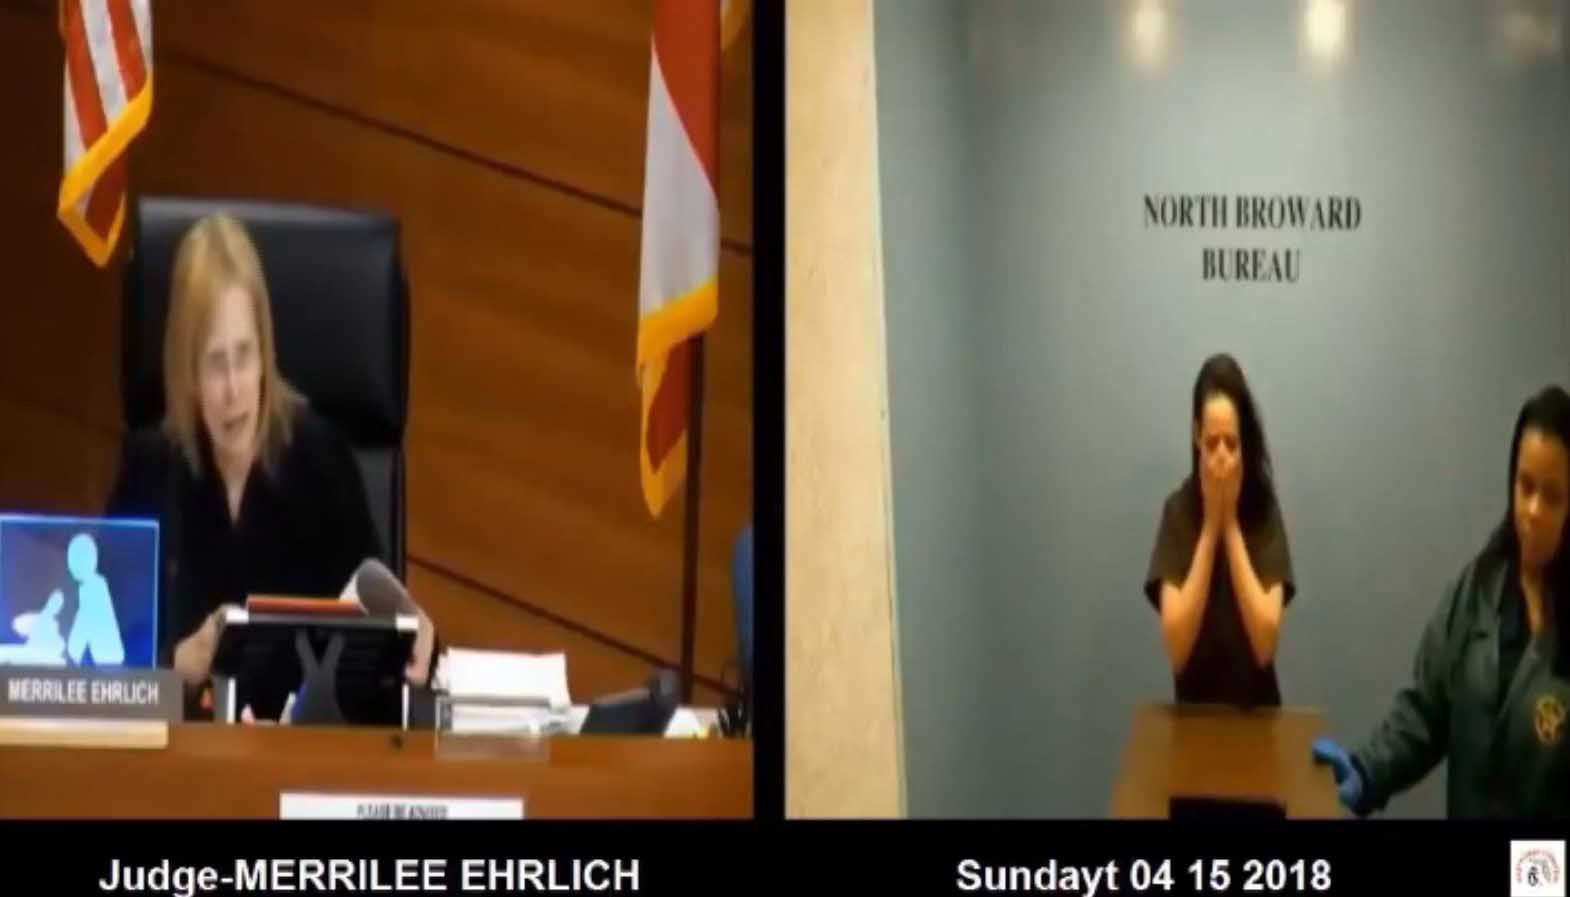 Judge Merrilee Ehrlich has stepped down after being accused of berating defendants. (Source: WSVN/CNN)